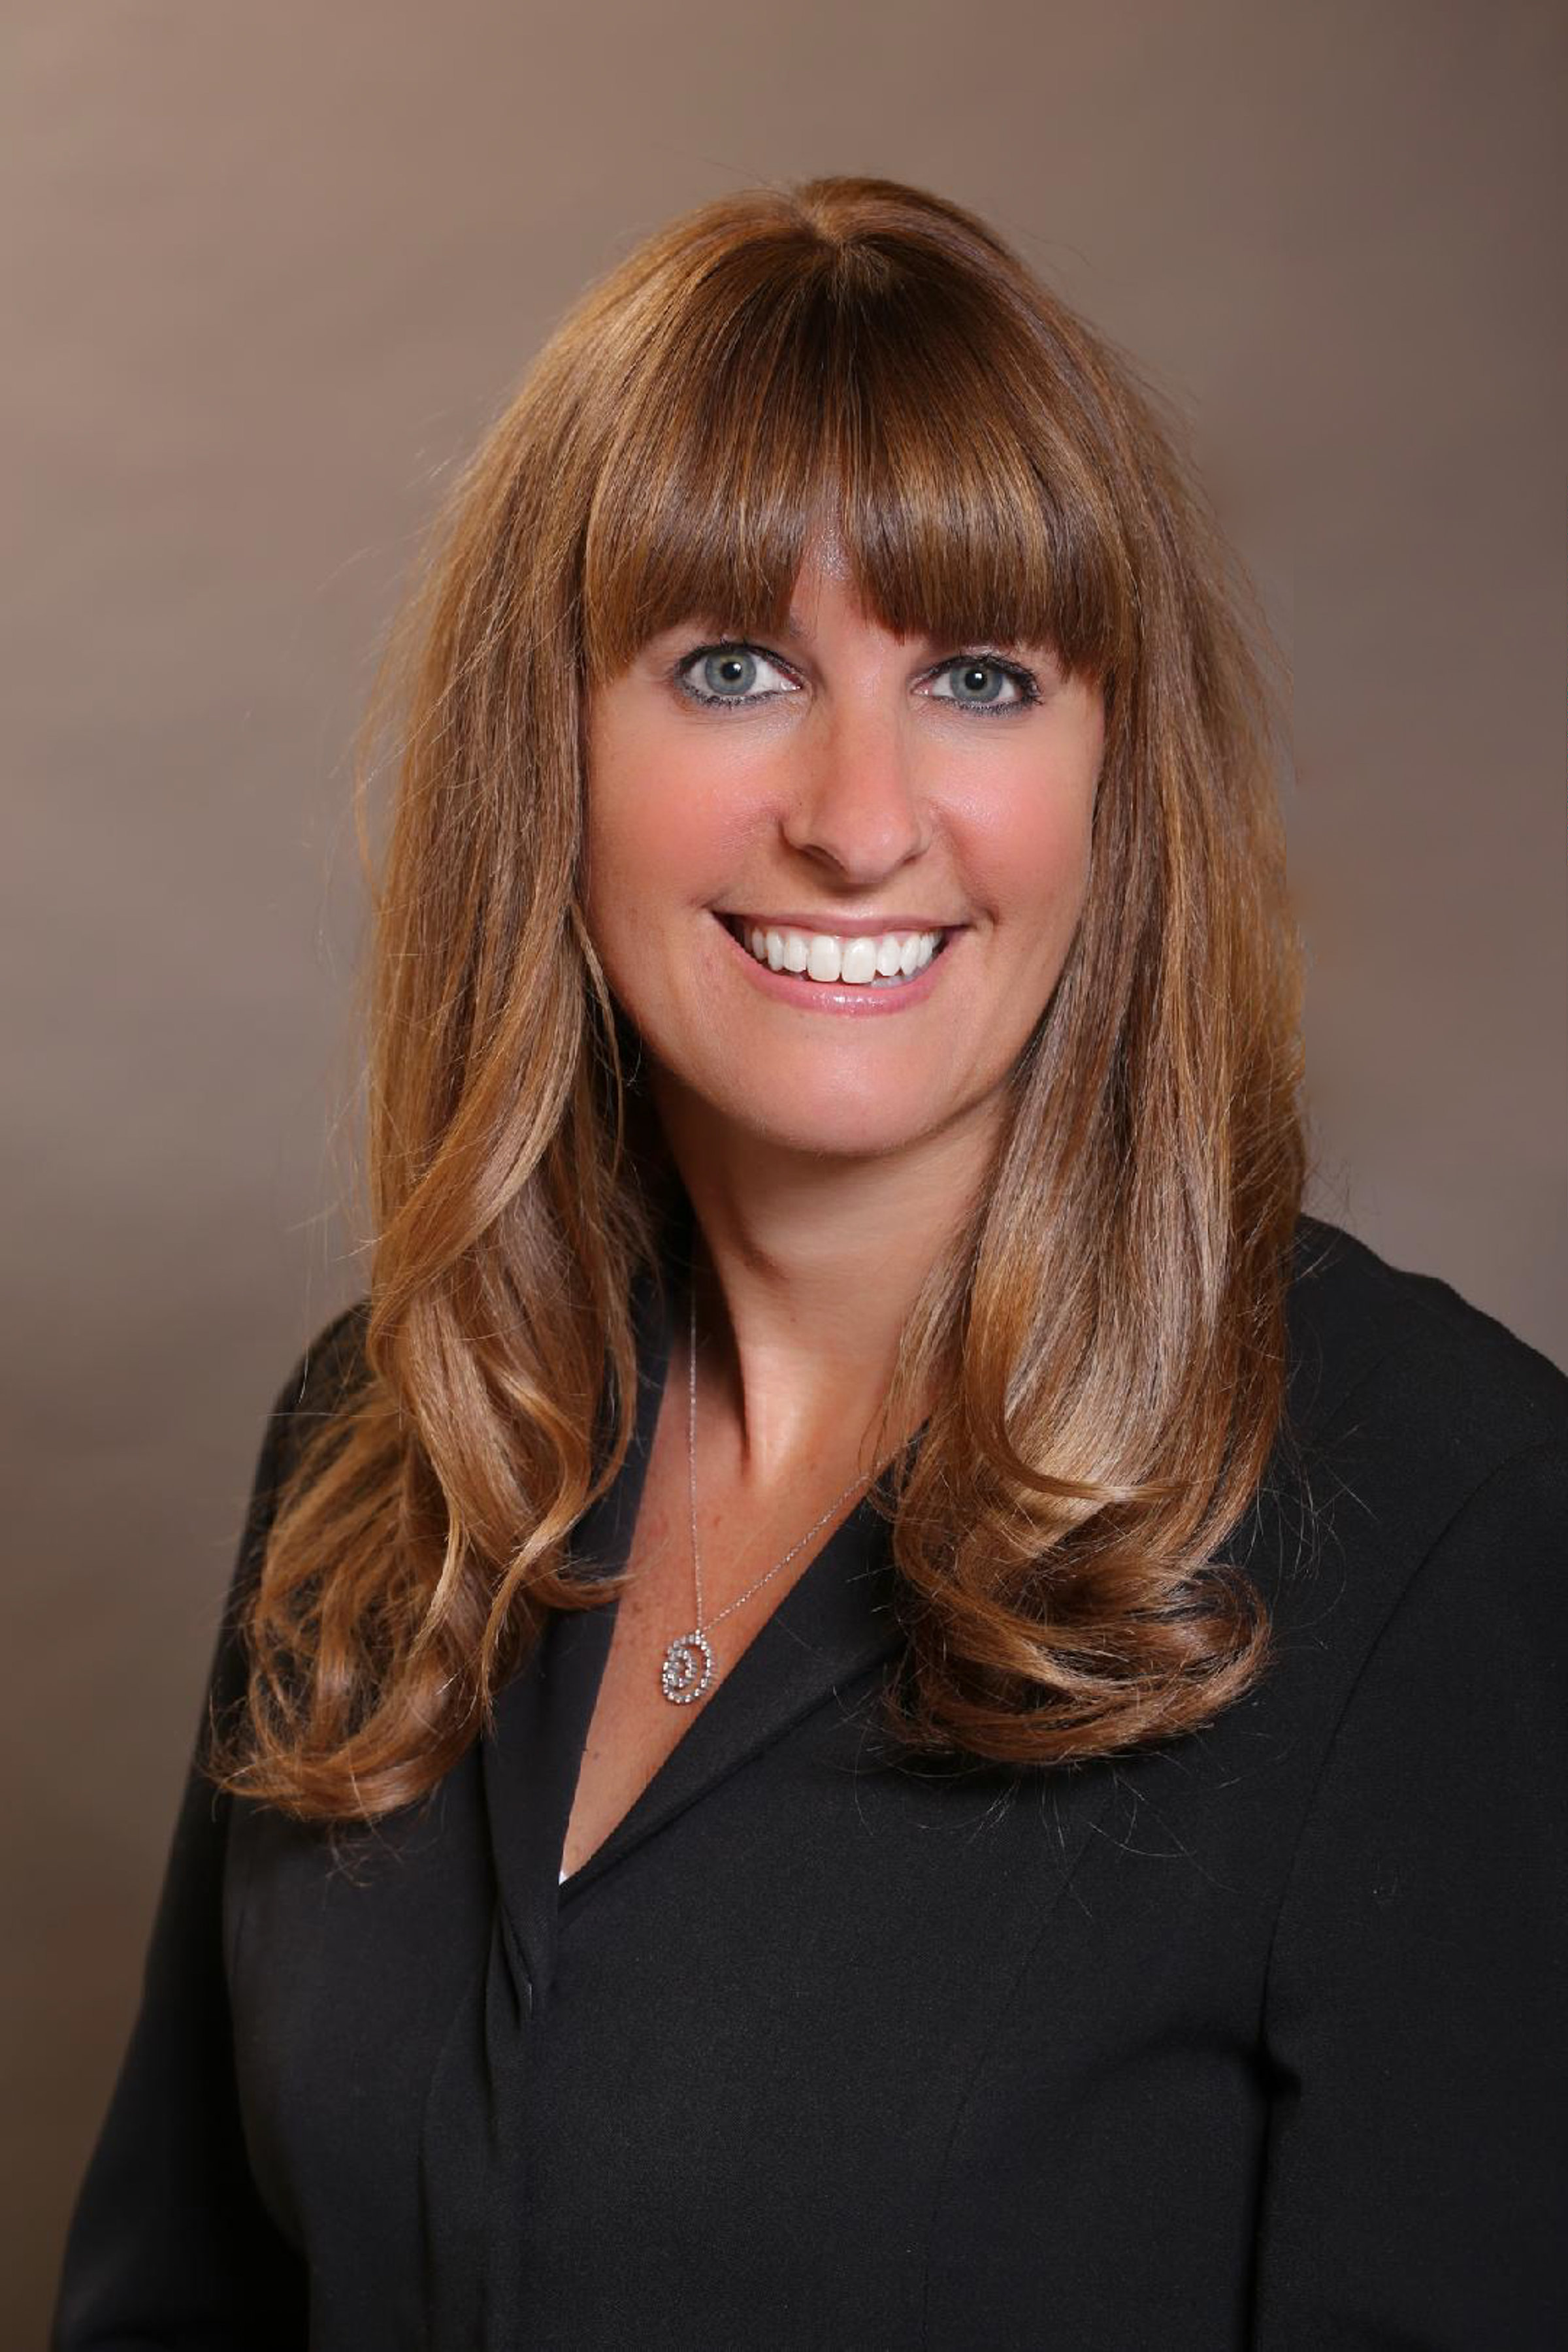 Debi Kinney<br>General Manager</br>& Director of Sales,<br>Las Vegas</br>